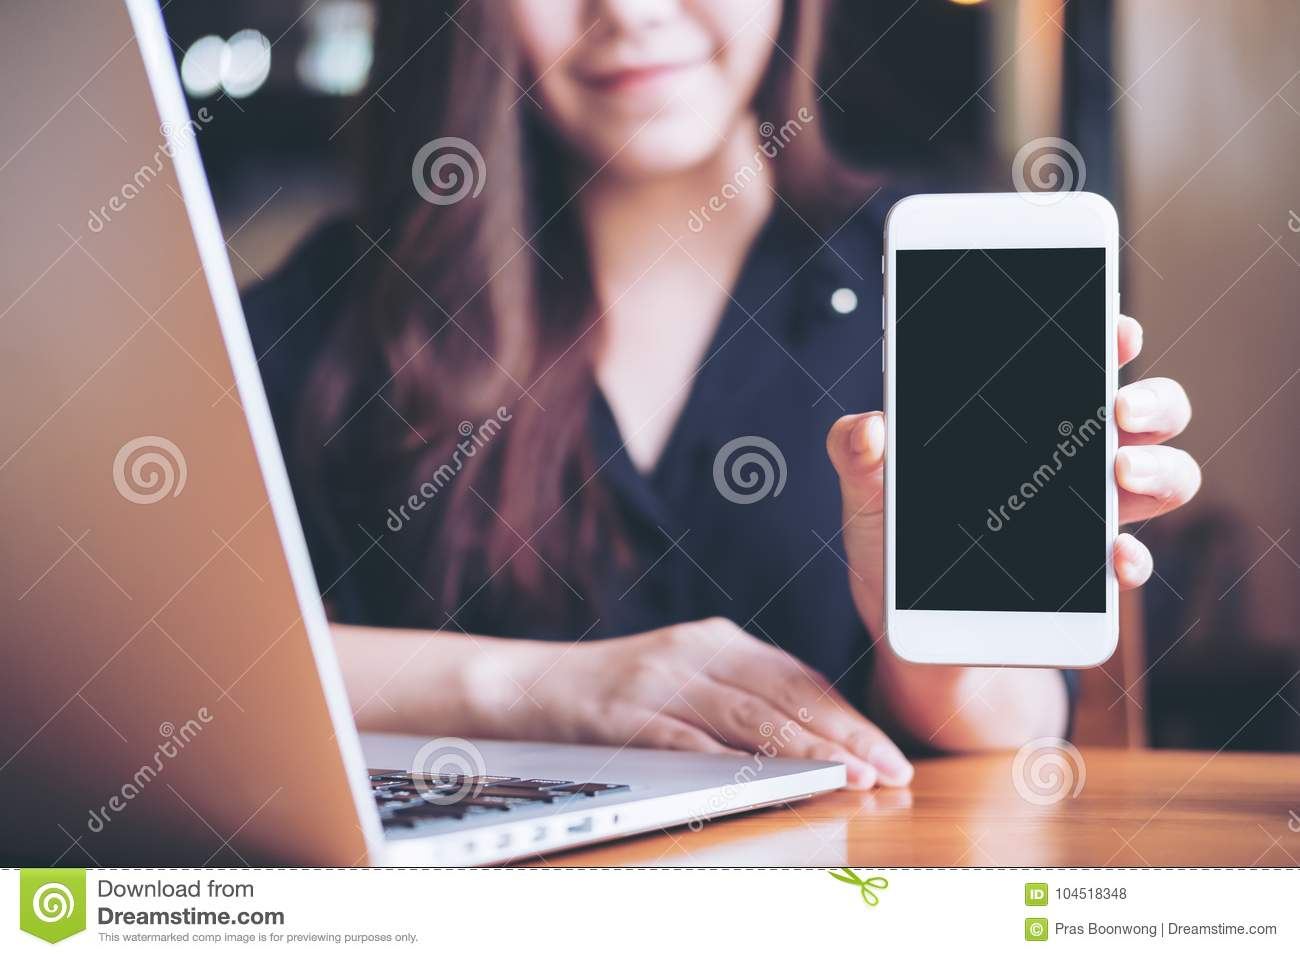 Mockup image of a smiley Asian beautiful woman holding and showing white mobile phone with blank black screen while using laptop